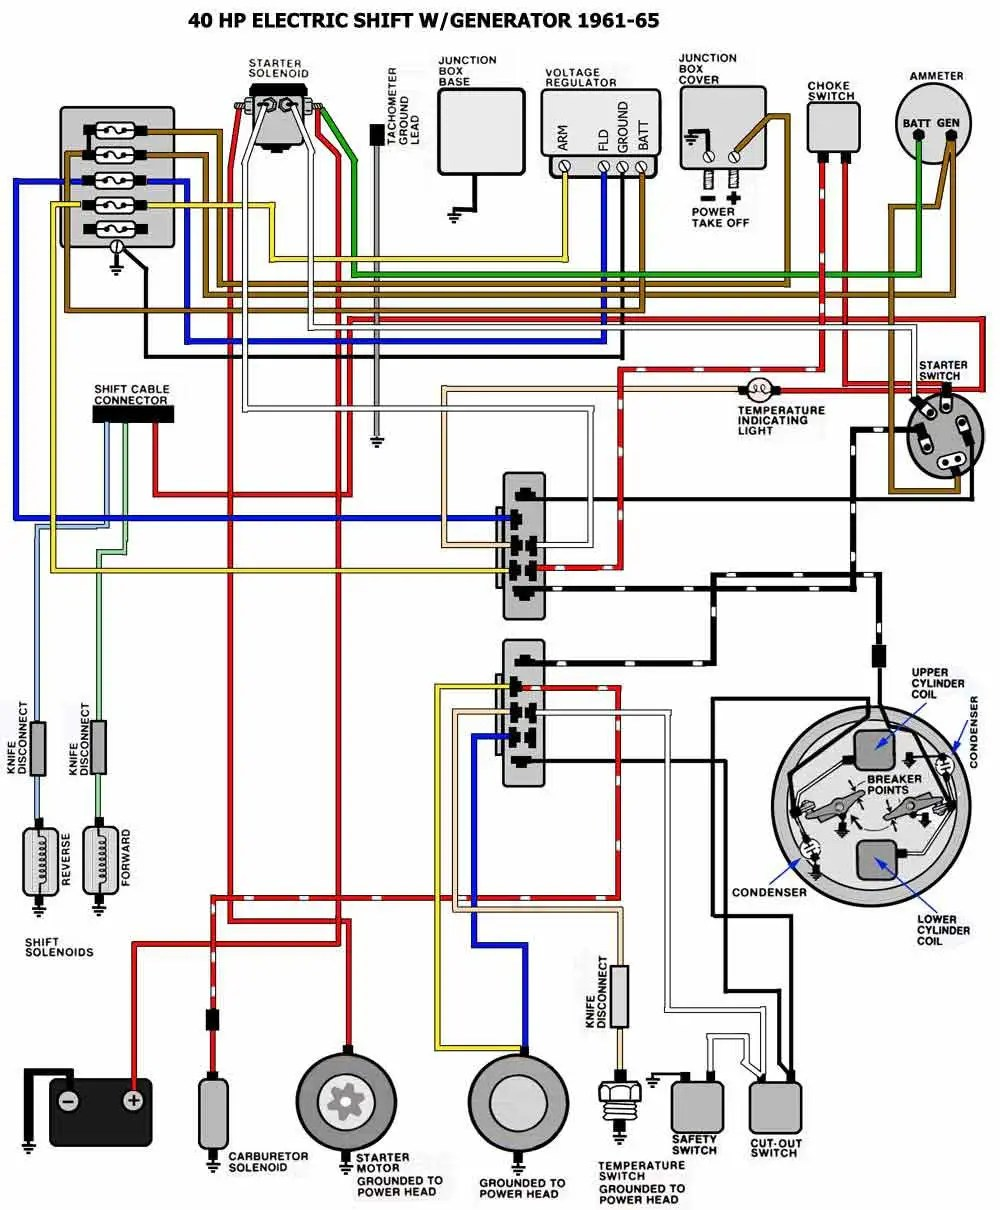 medium resolution of mercury 40hp ignition switch wiring diagram wiring diagram portal mercury 50 hp wiring mercury 40 hp wiring